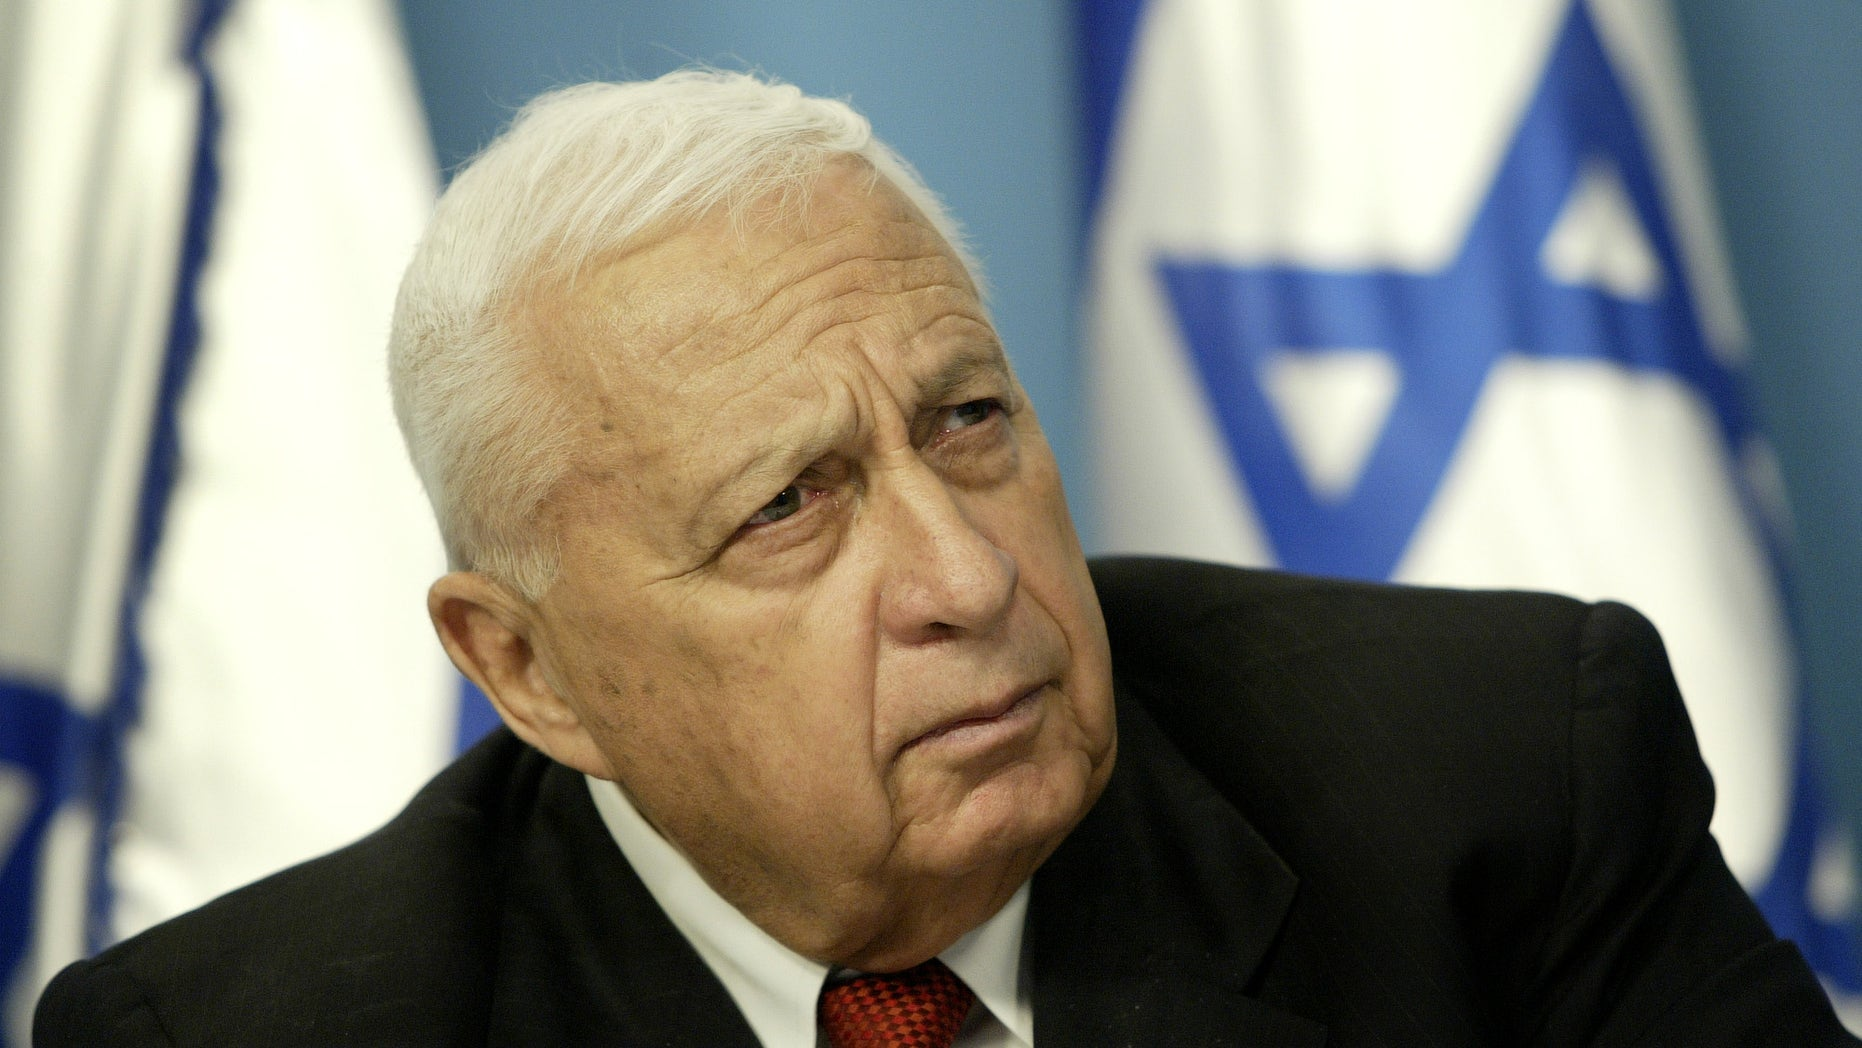 FILE - In this Sunday May 16, 2004 file photo, Israeli Prime Minister Ariel Sharon pauses during a news conference in his Jerusalem office regarding education reform. Israeli media outlets are reporting that Sharon has died Saturday, Jan. 11, 2014 at the age of 85. (AP Photo/Oded Balilty, File)